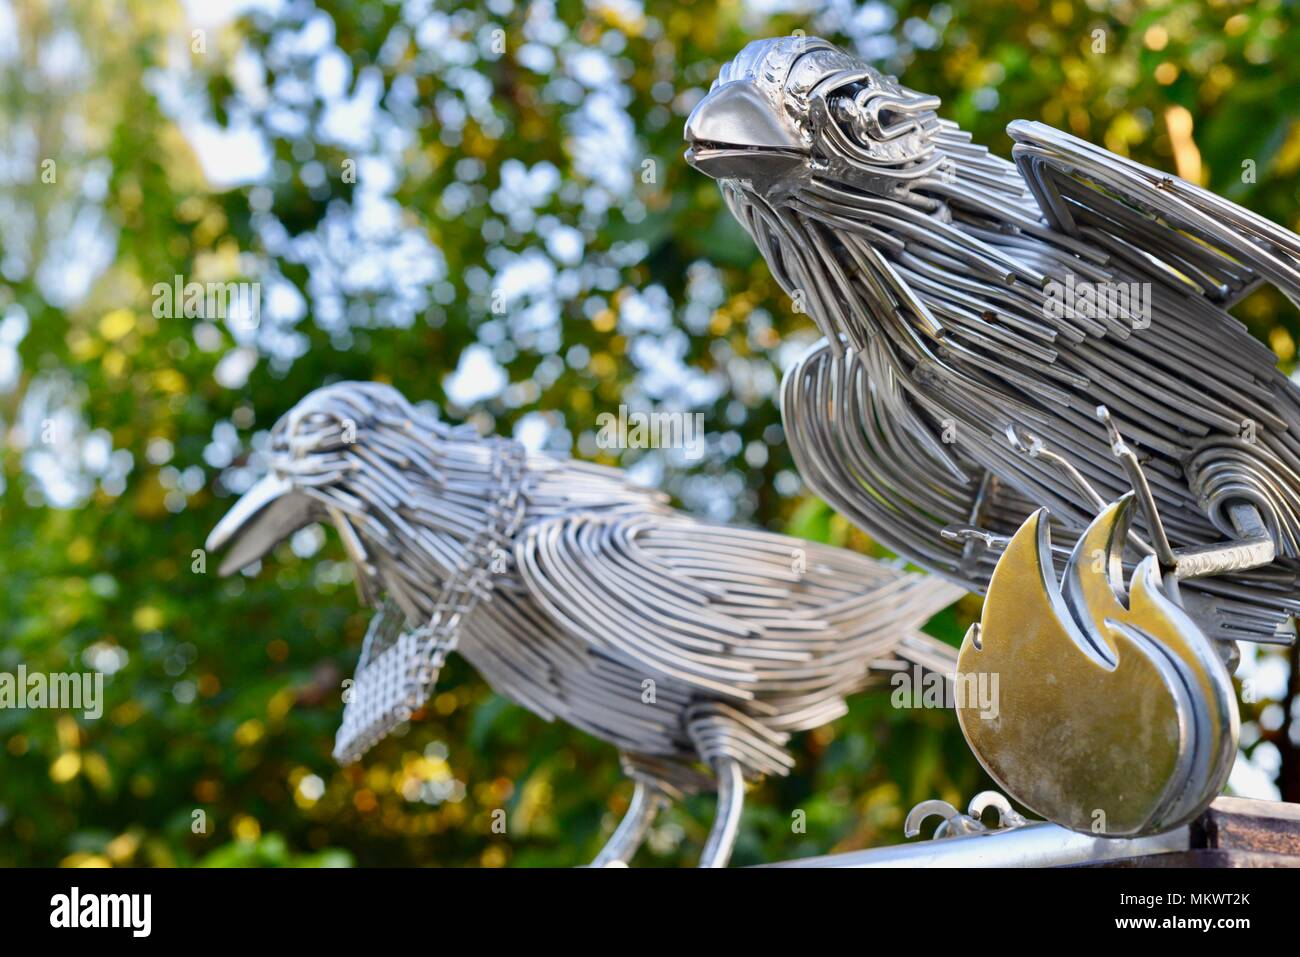 Crows On Wire Stock Photos Images Alamy Wiring Trough Stainless Steel Sculptures Of Ravens Birds Artwork At Jezzine Barracks Kissing Point